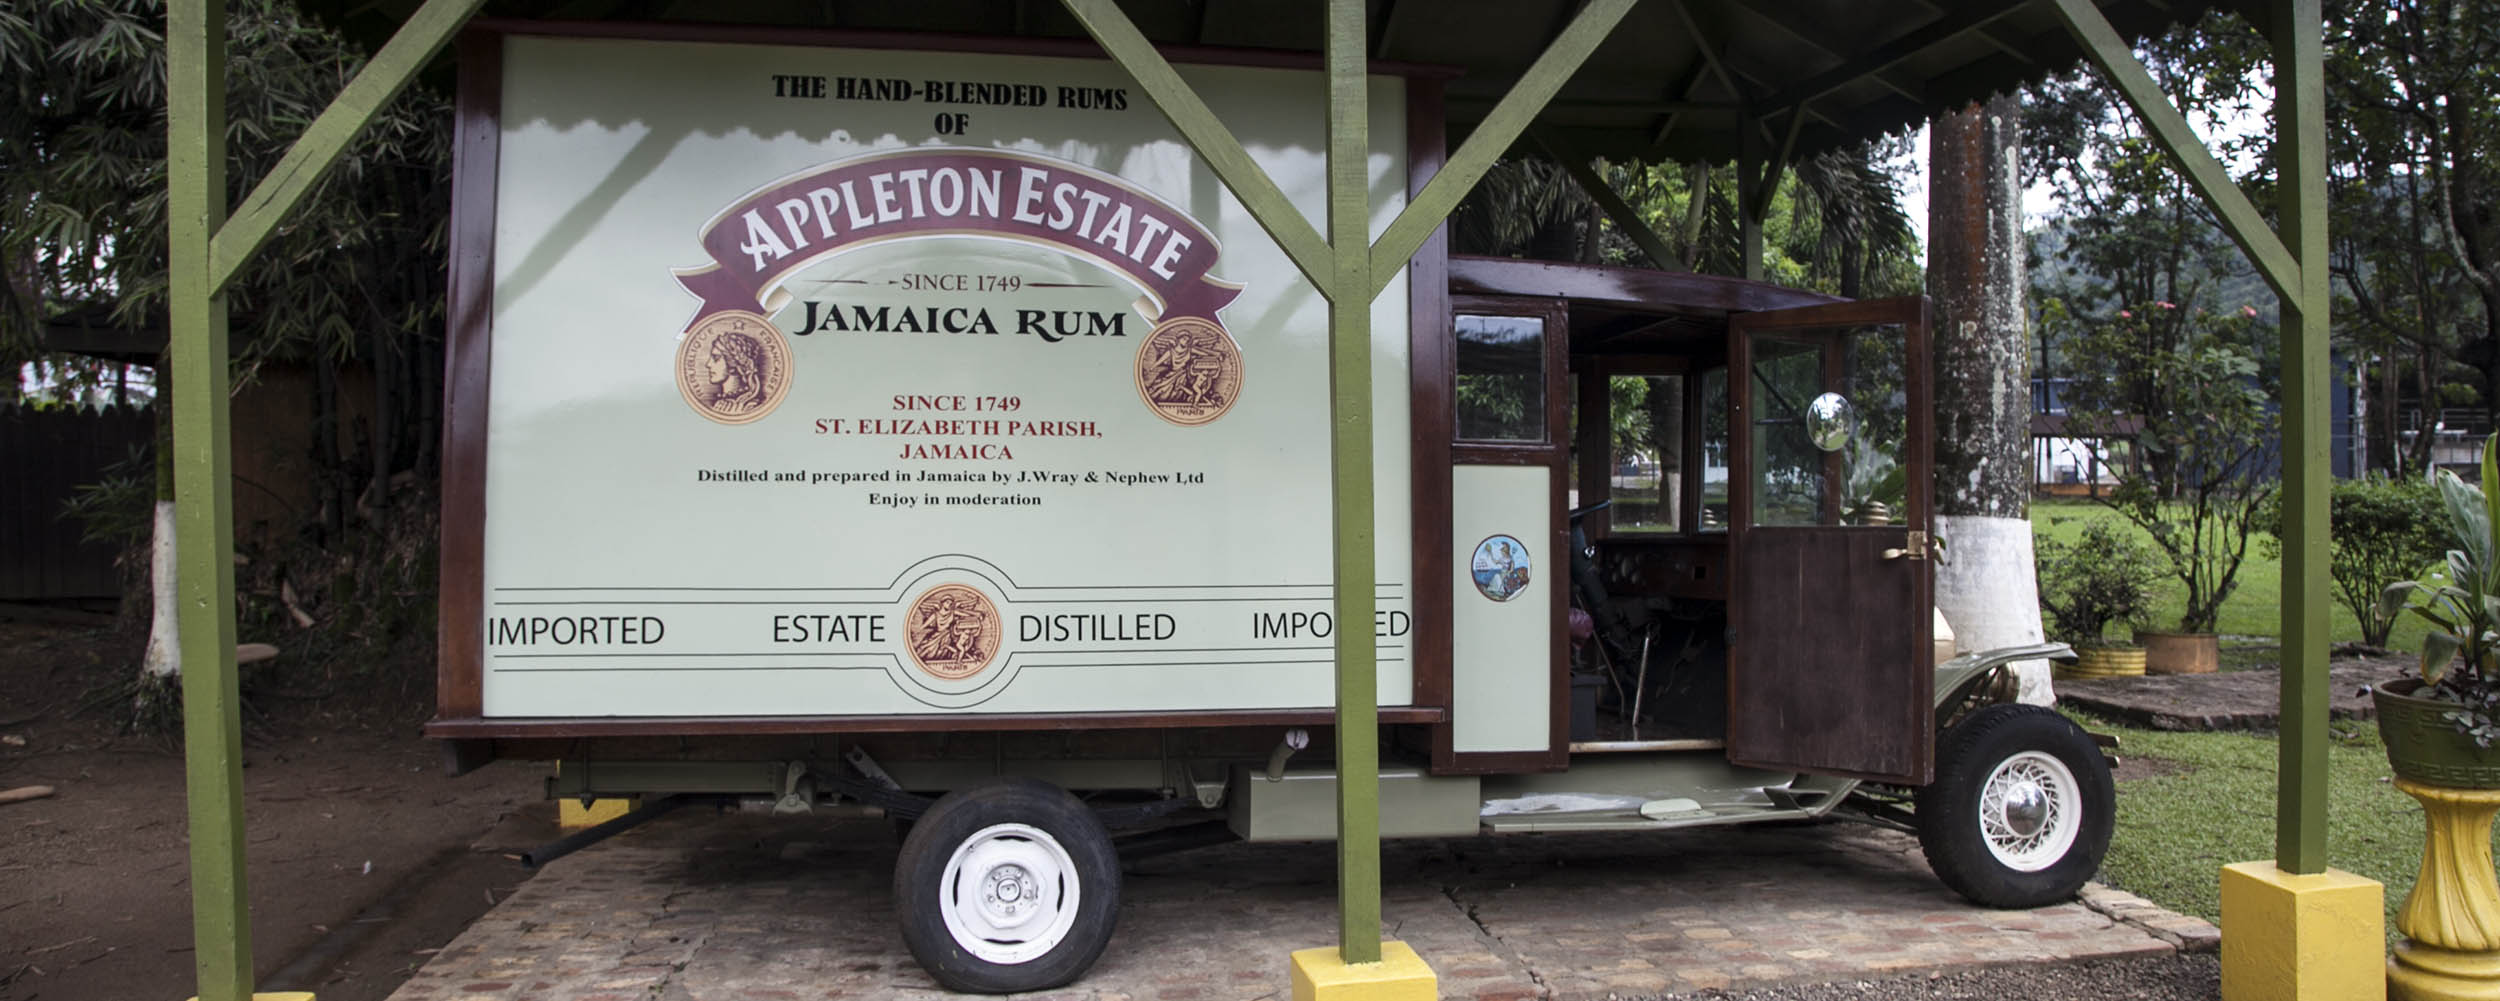 Appleton Estate Rum Factory - Jamaica